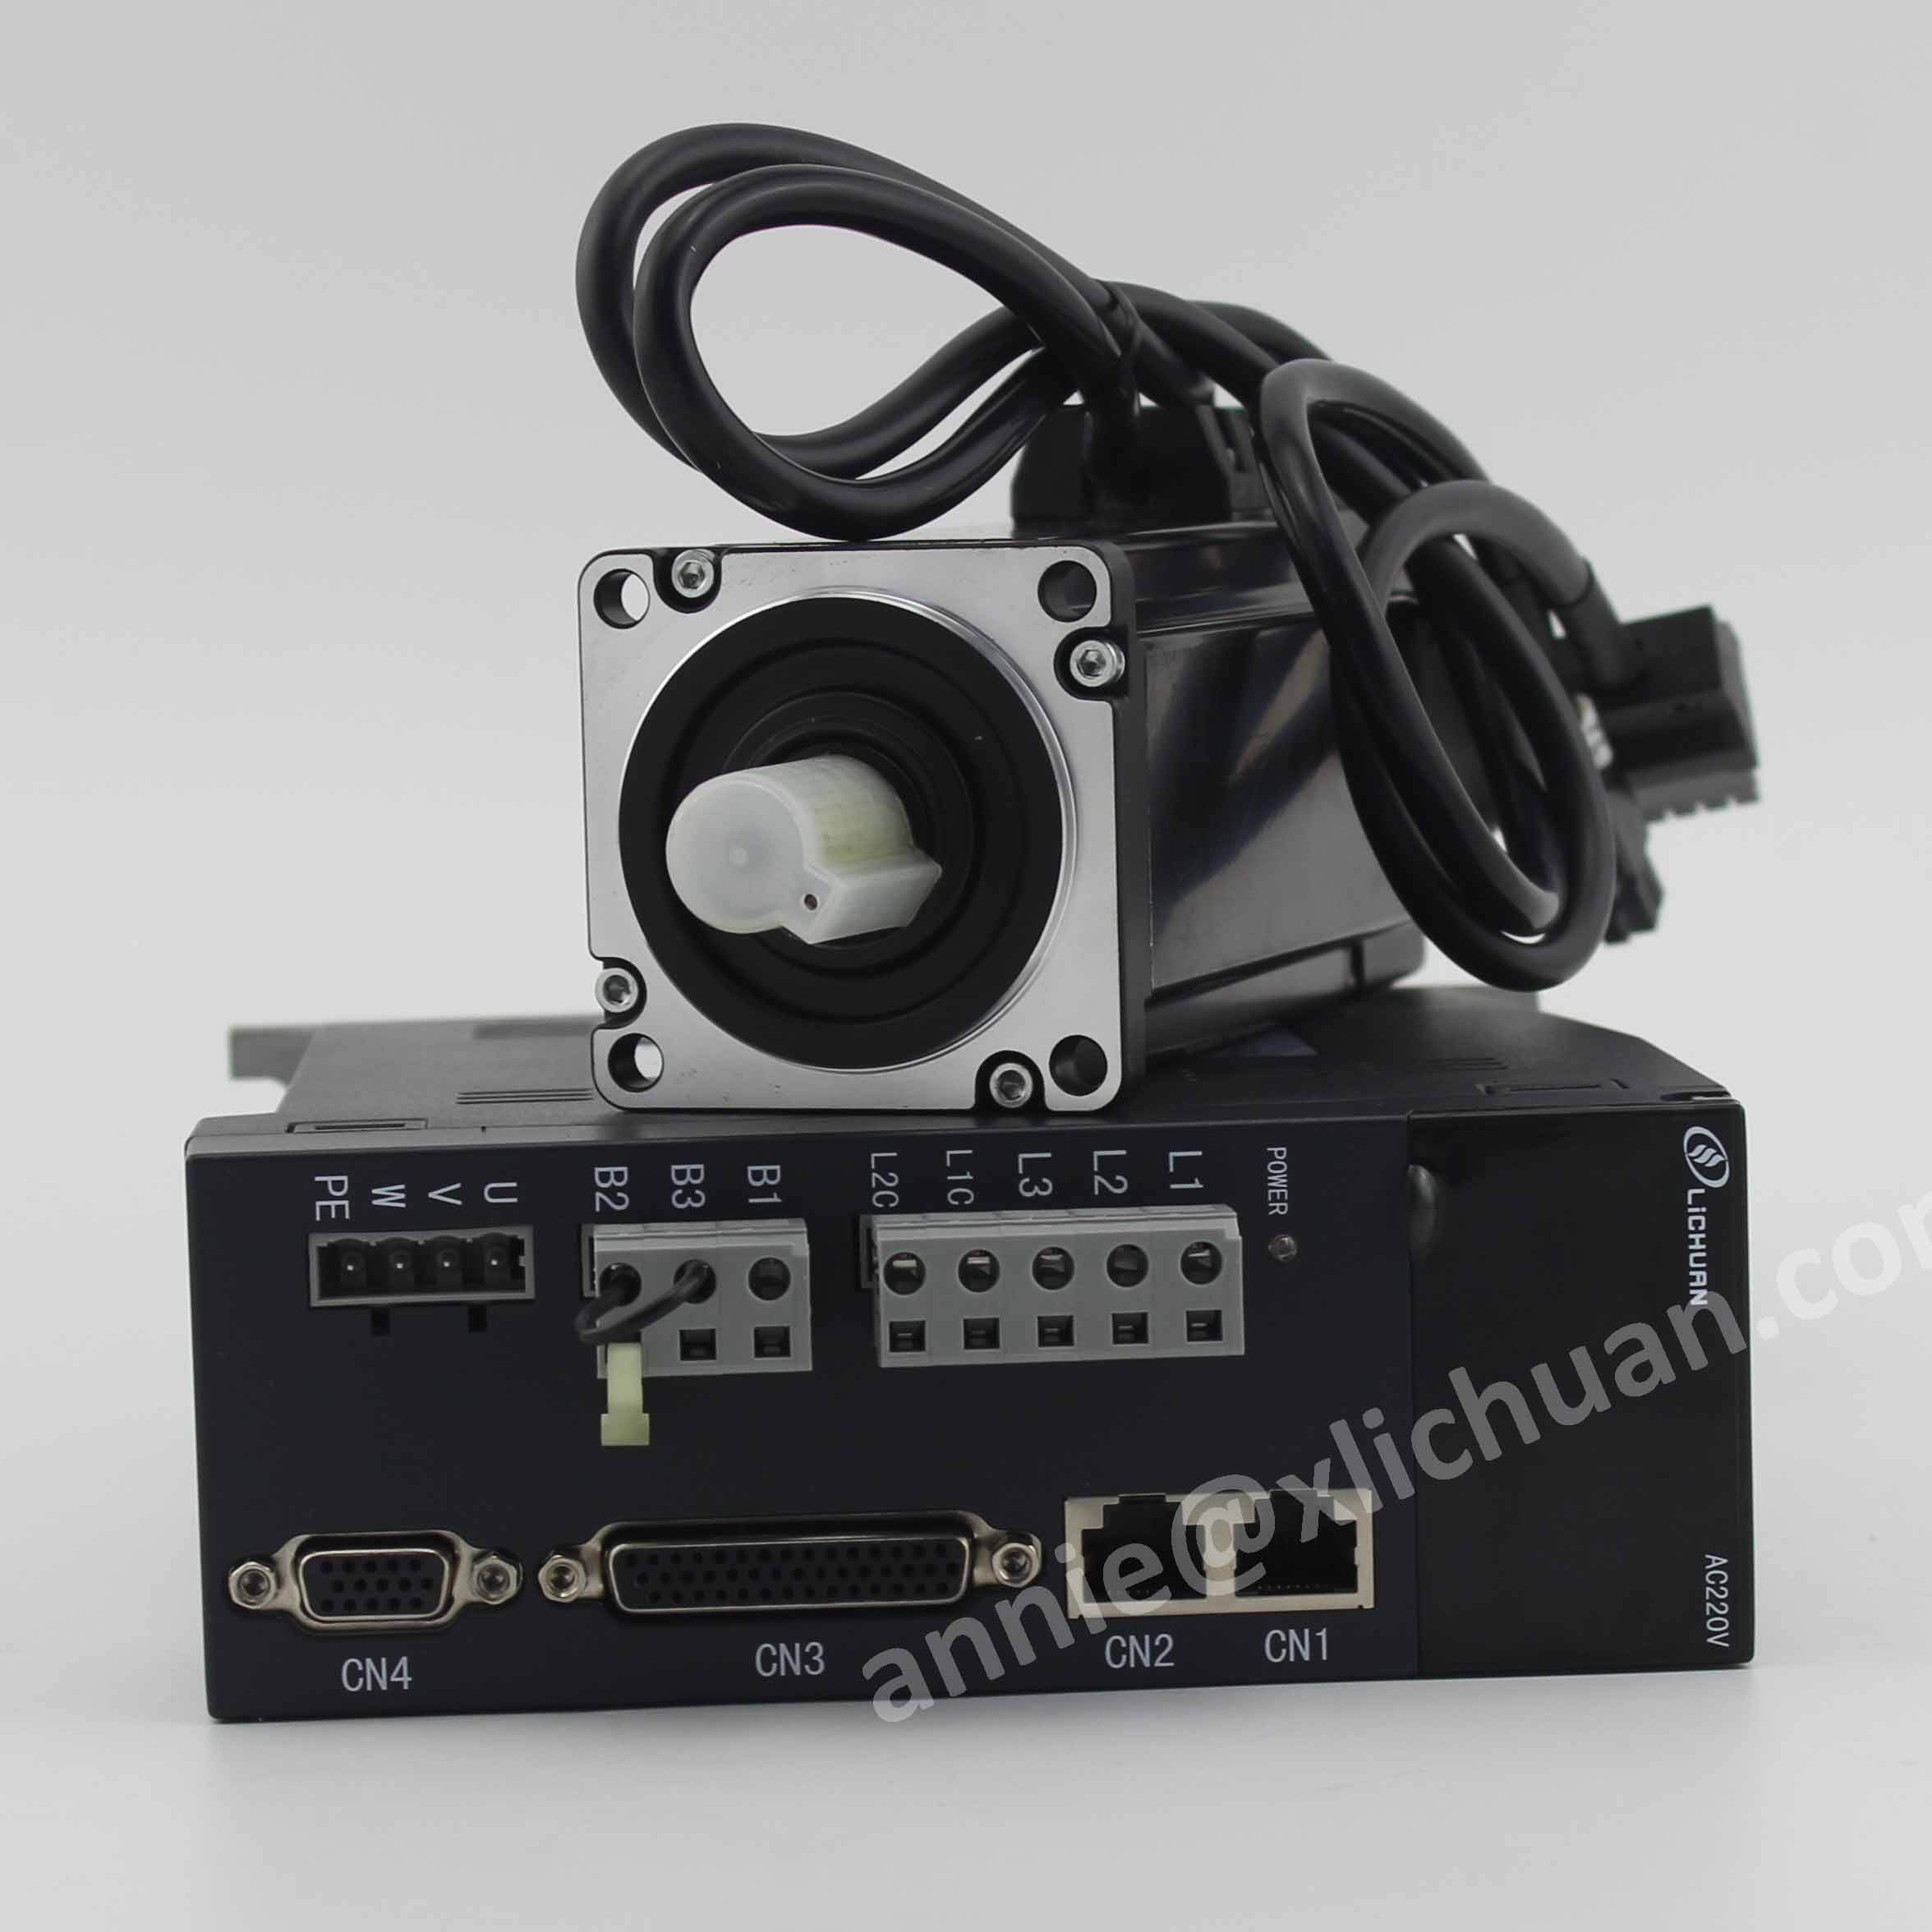 Lichuan 600w servo motor with driver set 60st-01930 cnc servo motor high speed ac motor 3000rpm servo 60 for CNC router